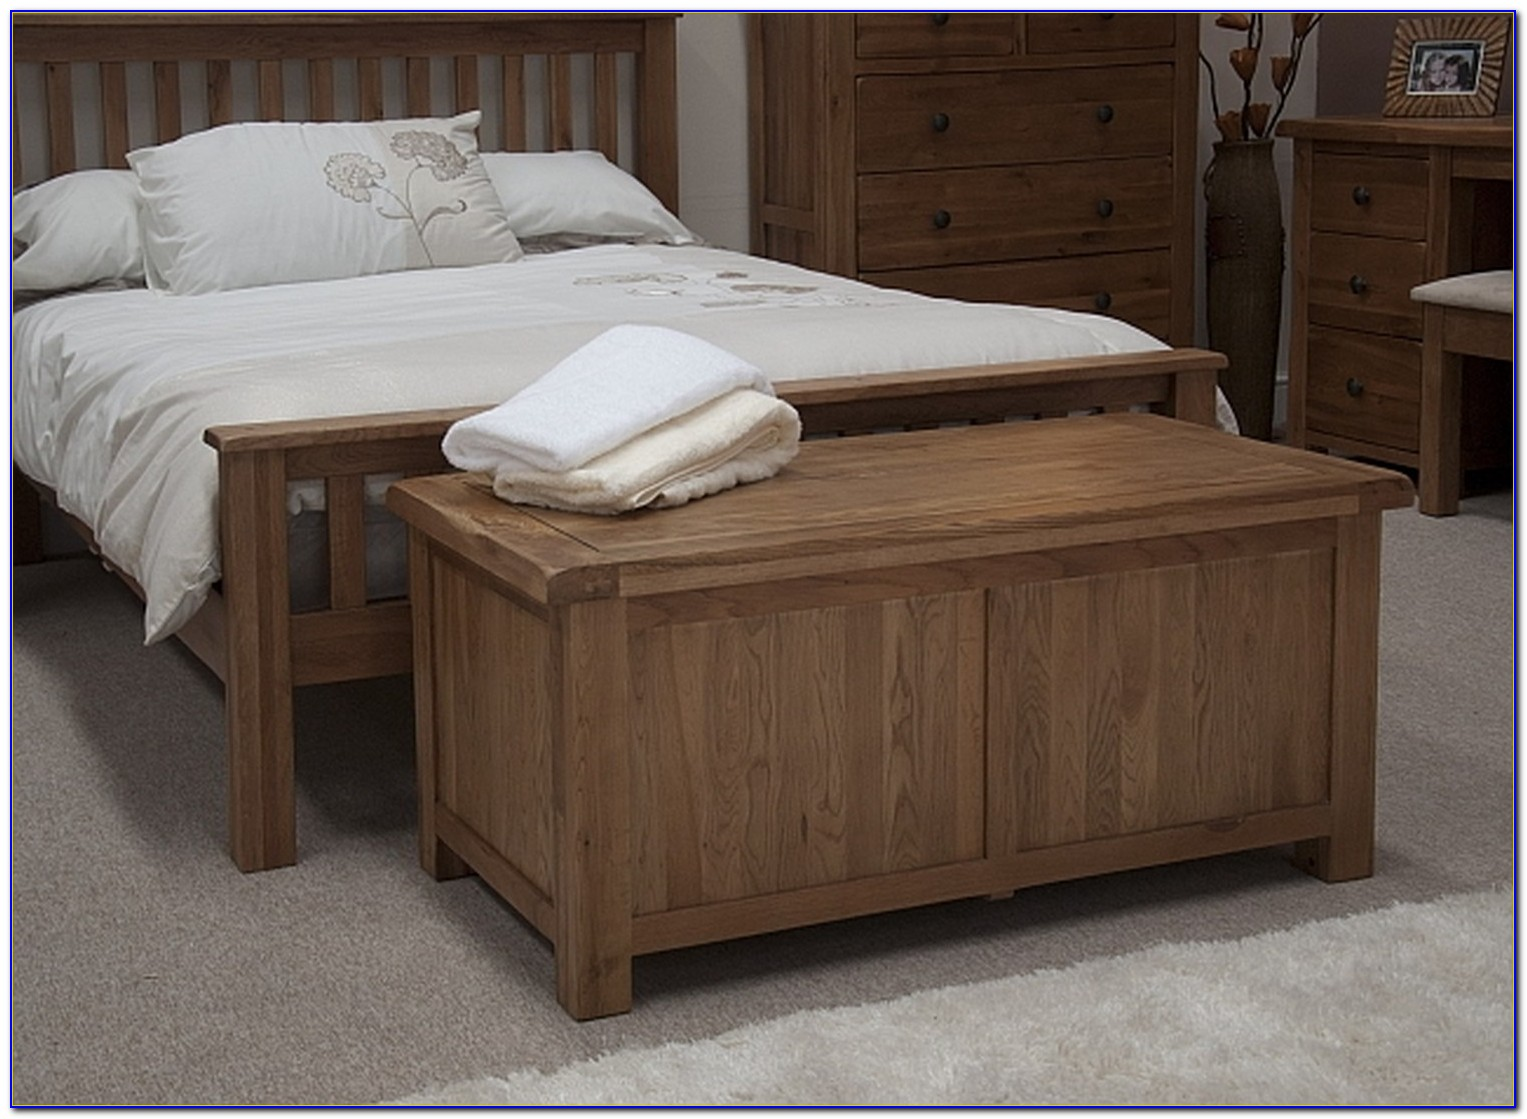 Storage Chest For Bedroom